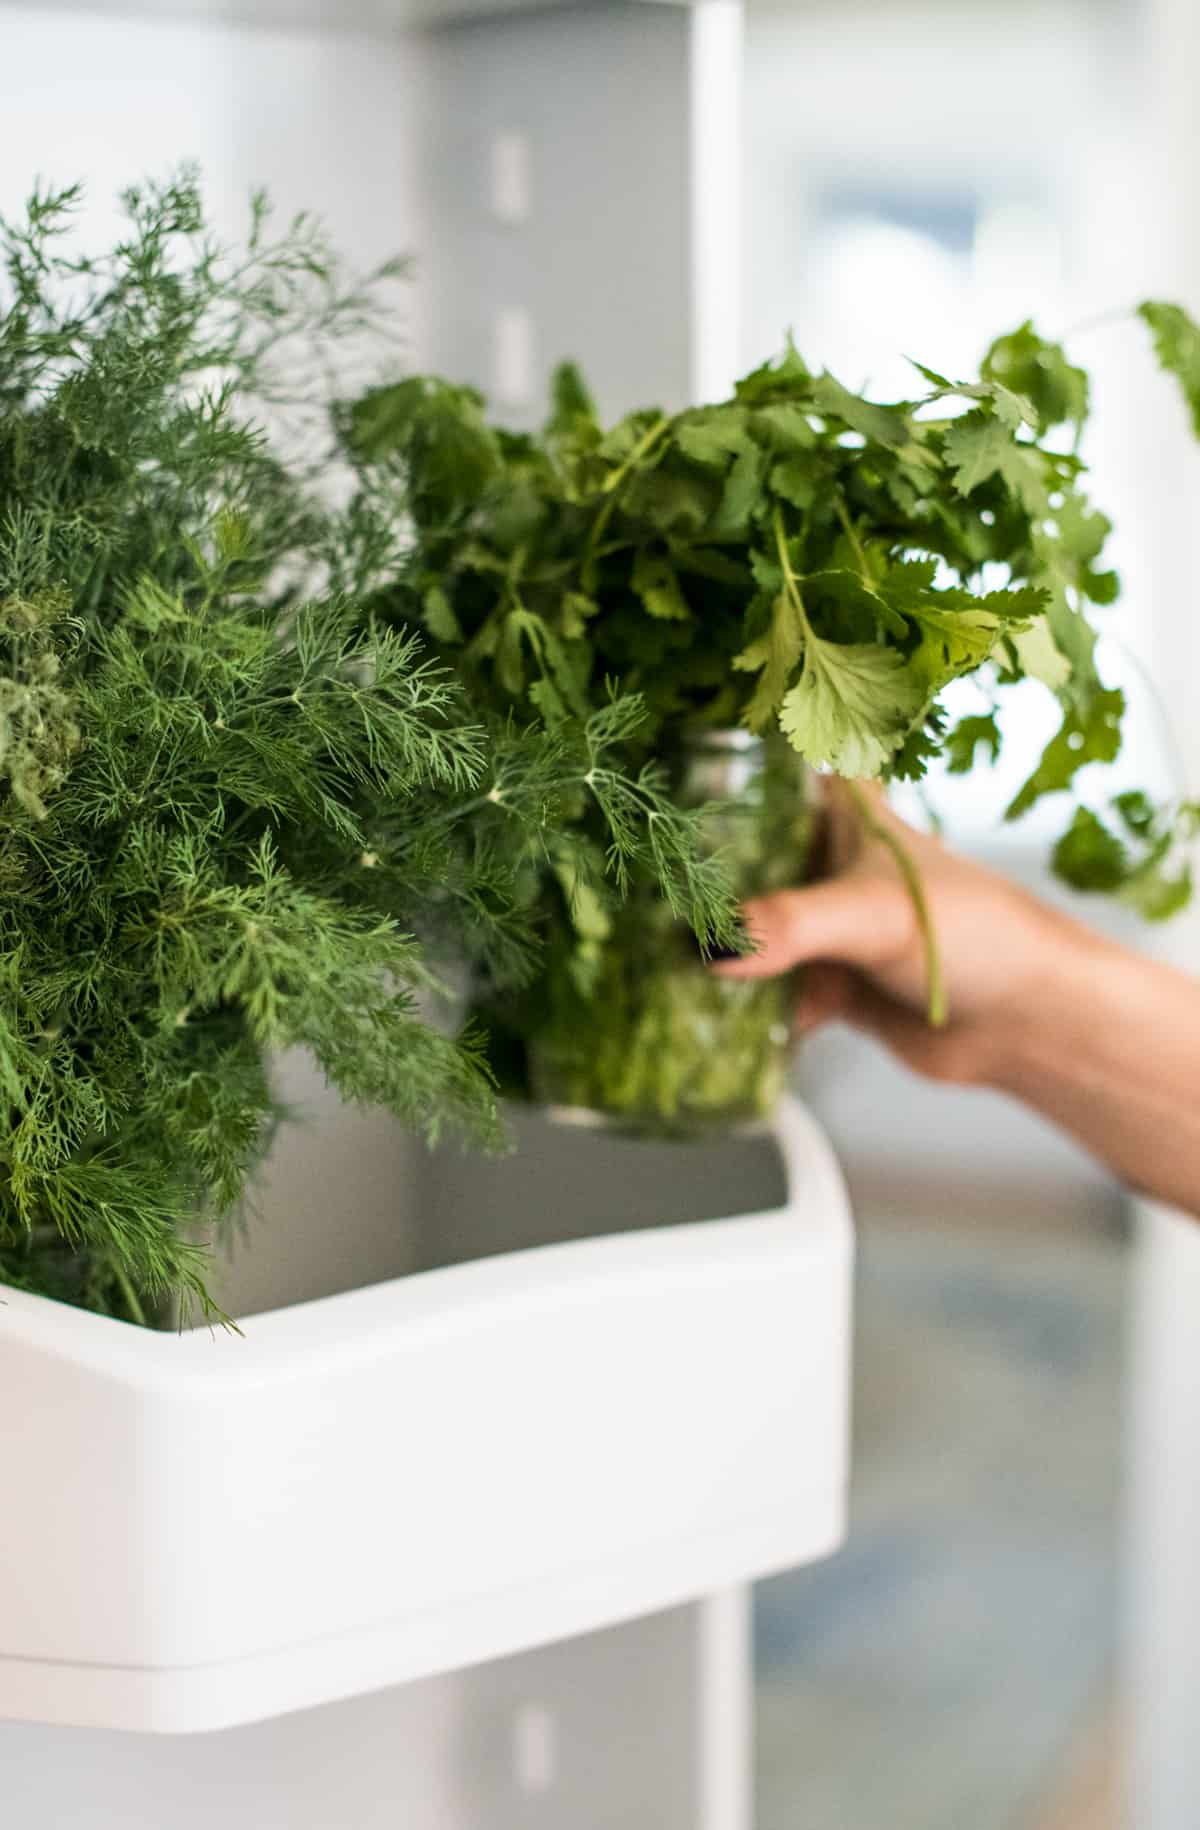 How to Store Fresh Herbs in the Refrigerator